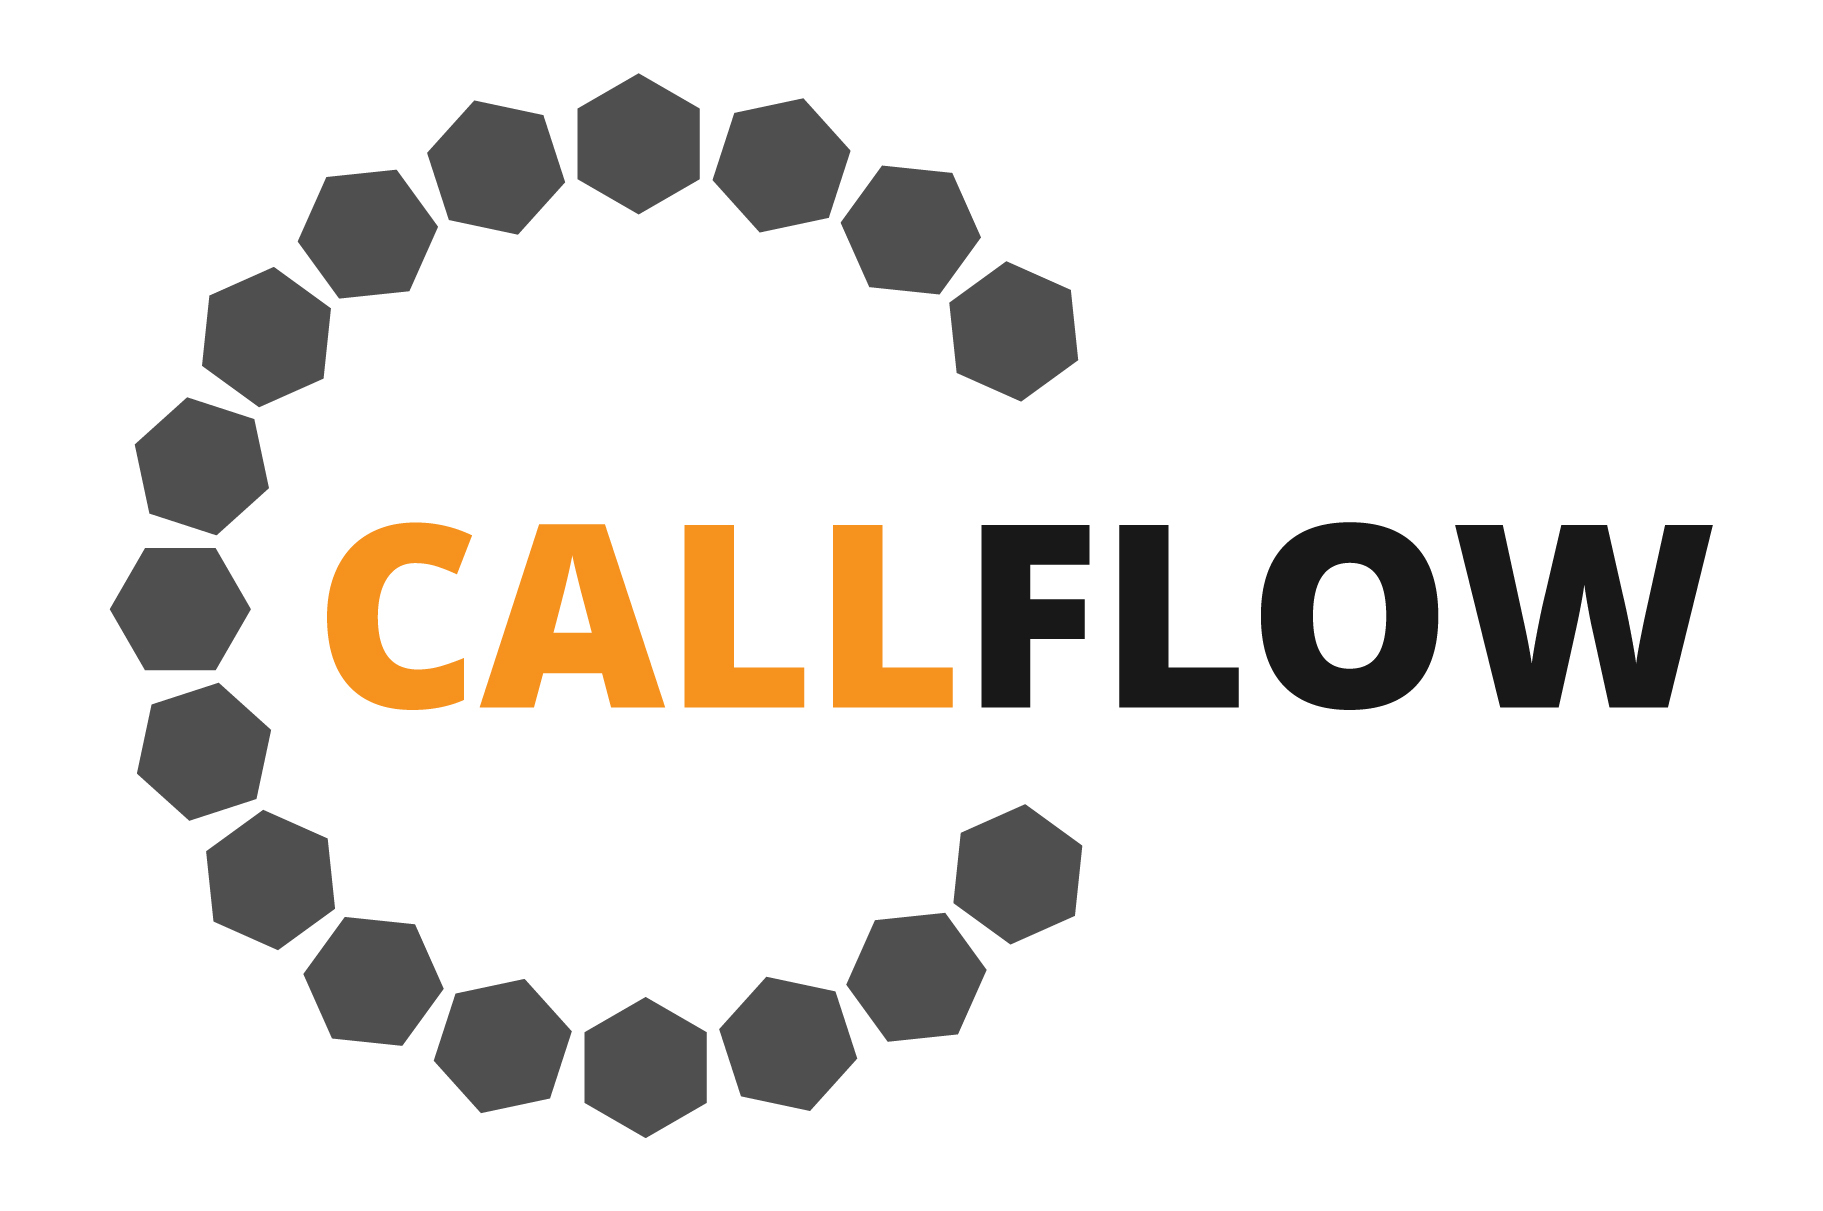 Trademark information for CALLFLOW from CTM - by Markify